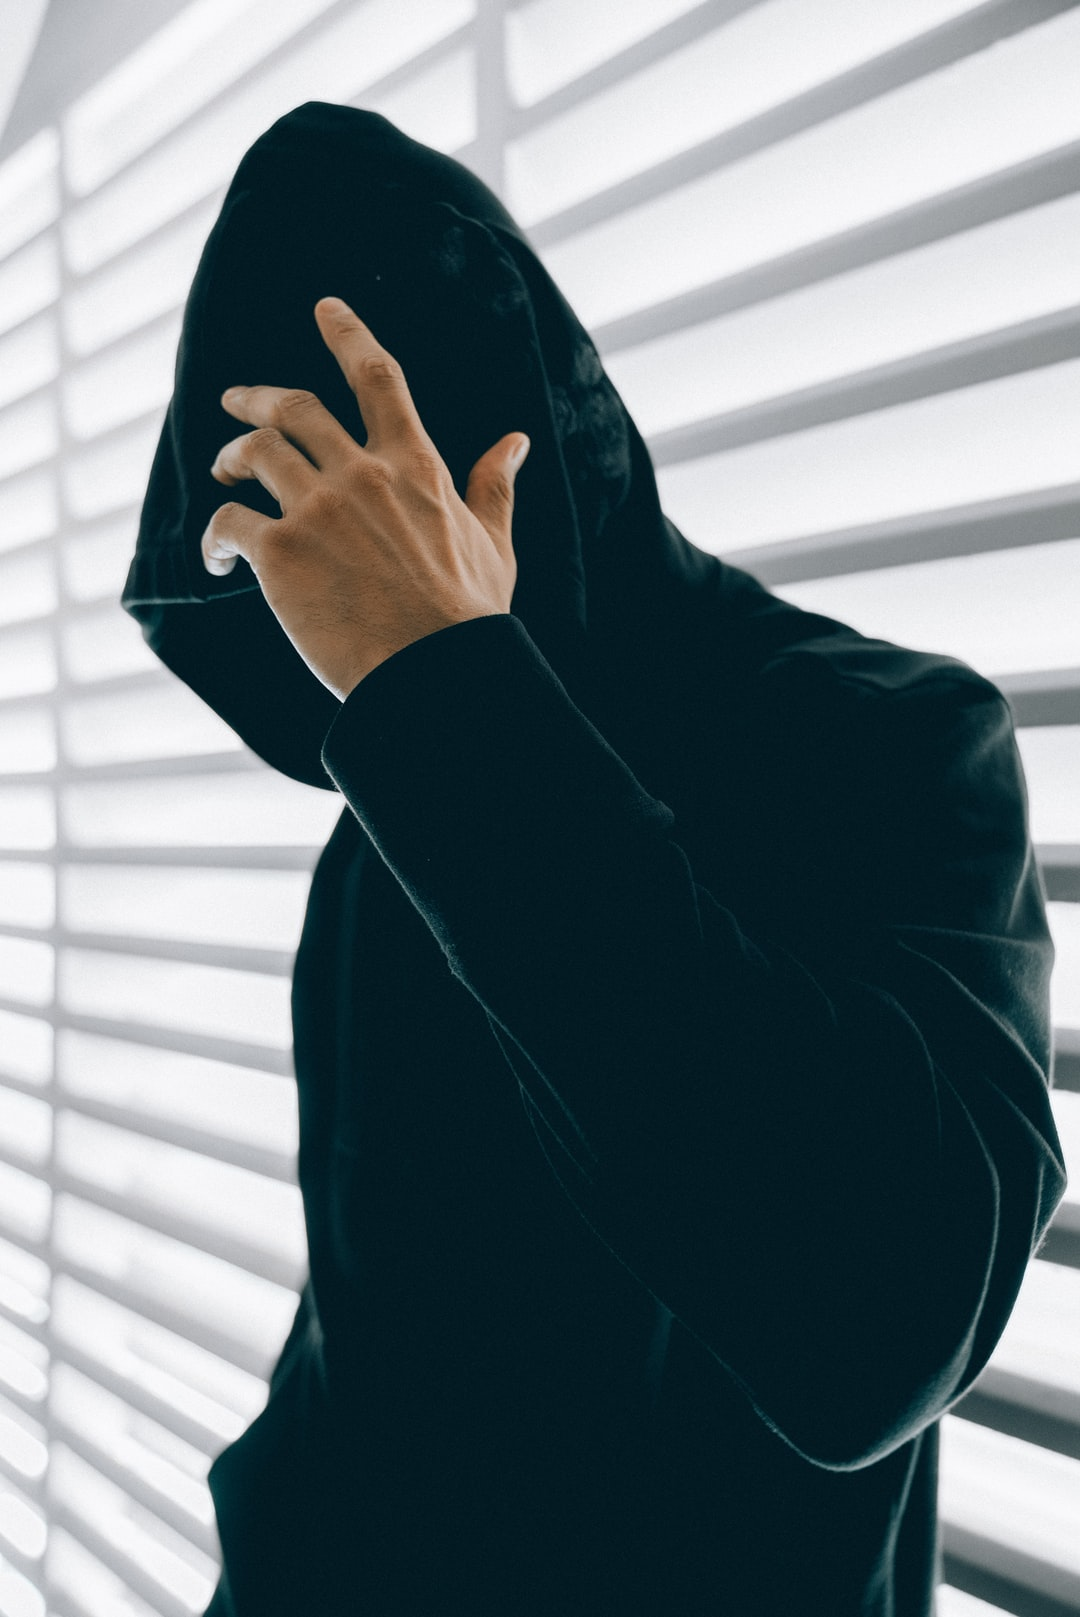 27 Hoodie Pictures Download Free Images Stock Photos On Unsplash